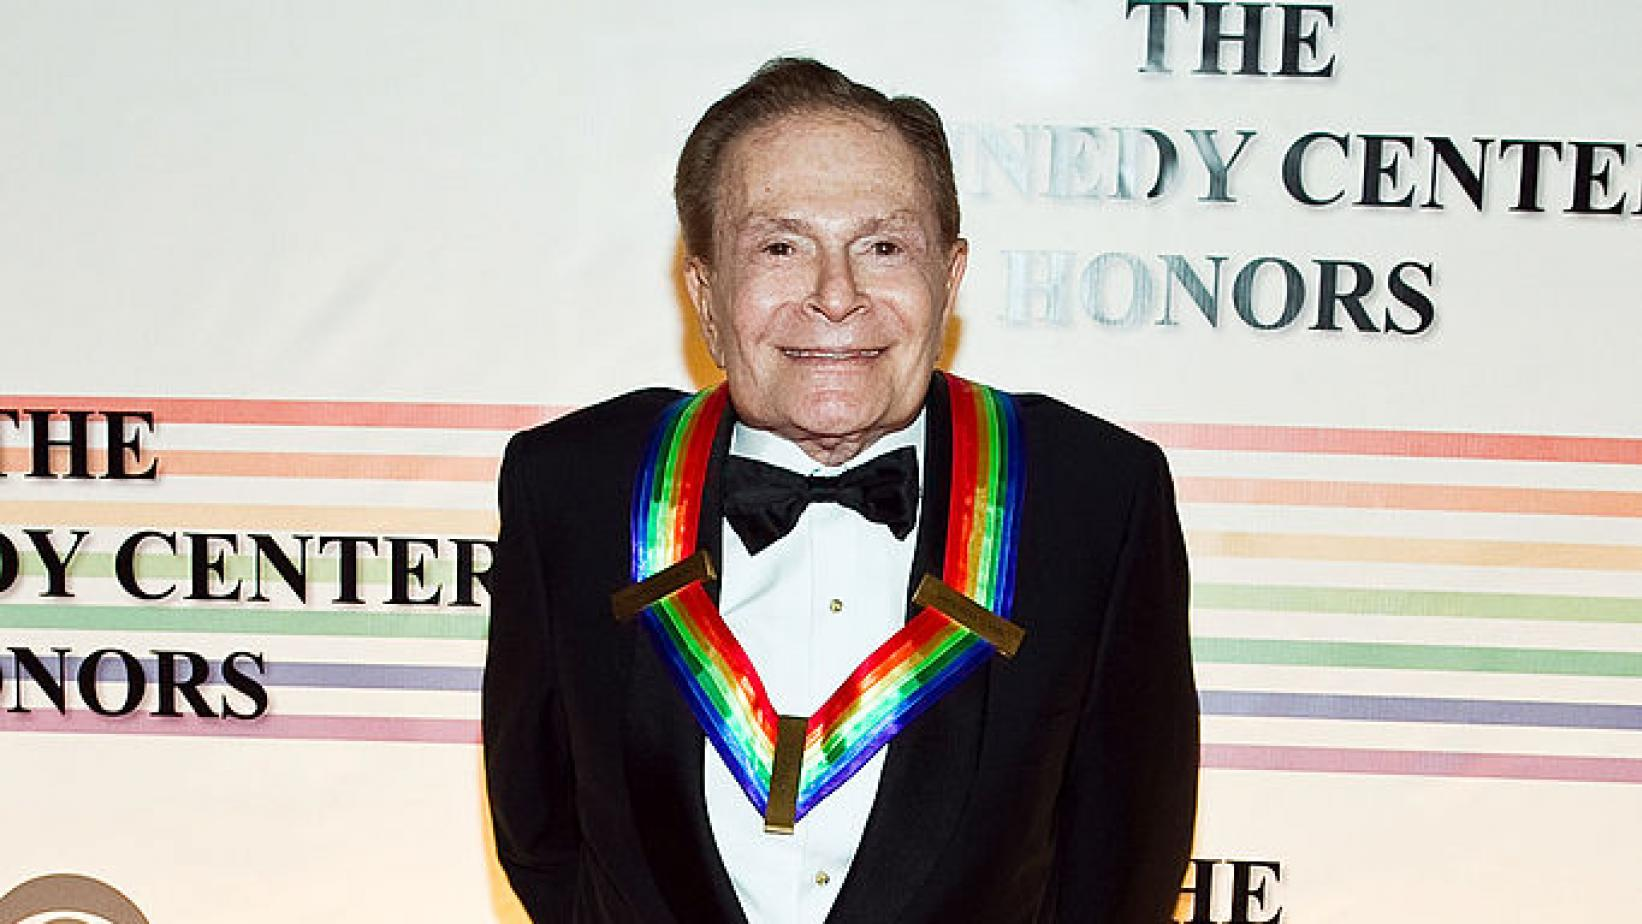 Jerry Herman receives Kenny Center Honors